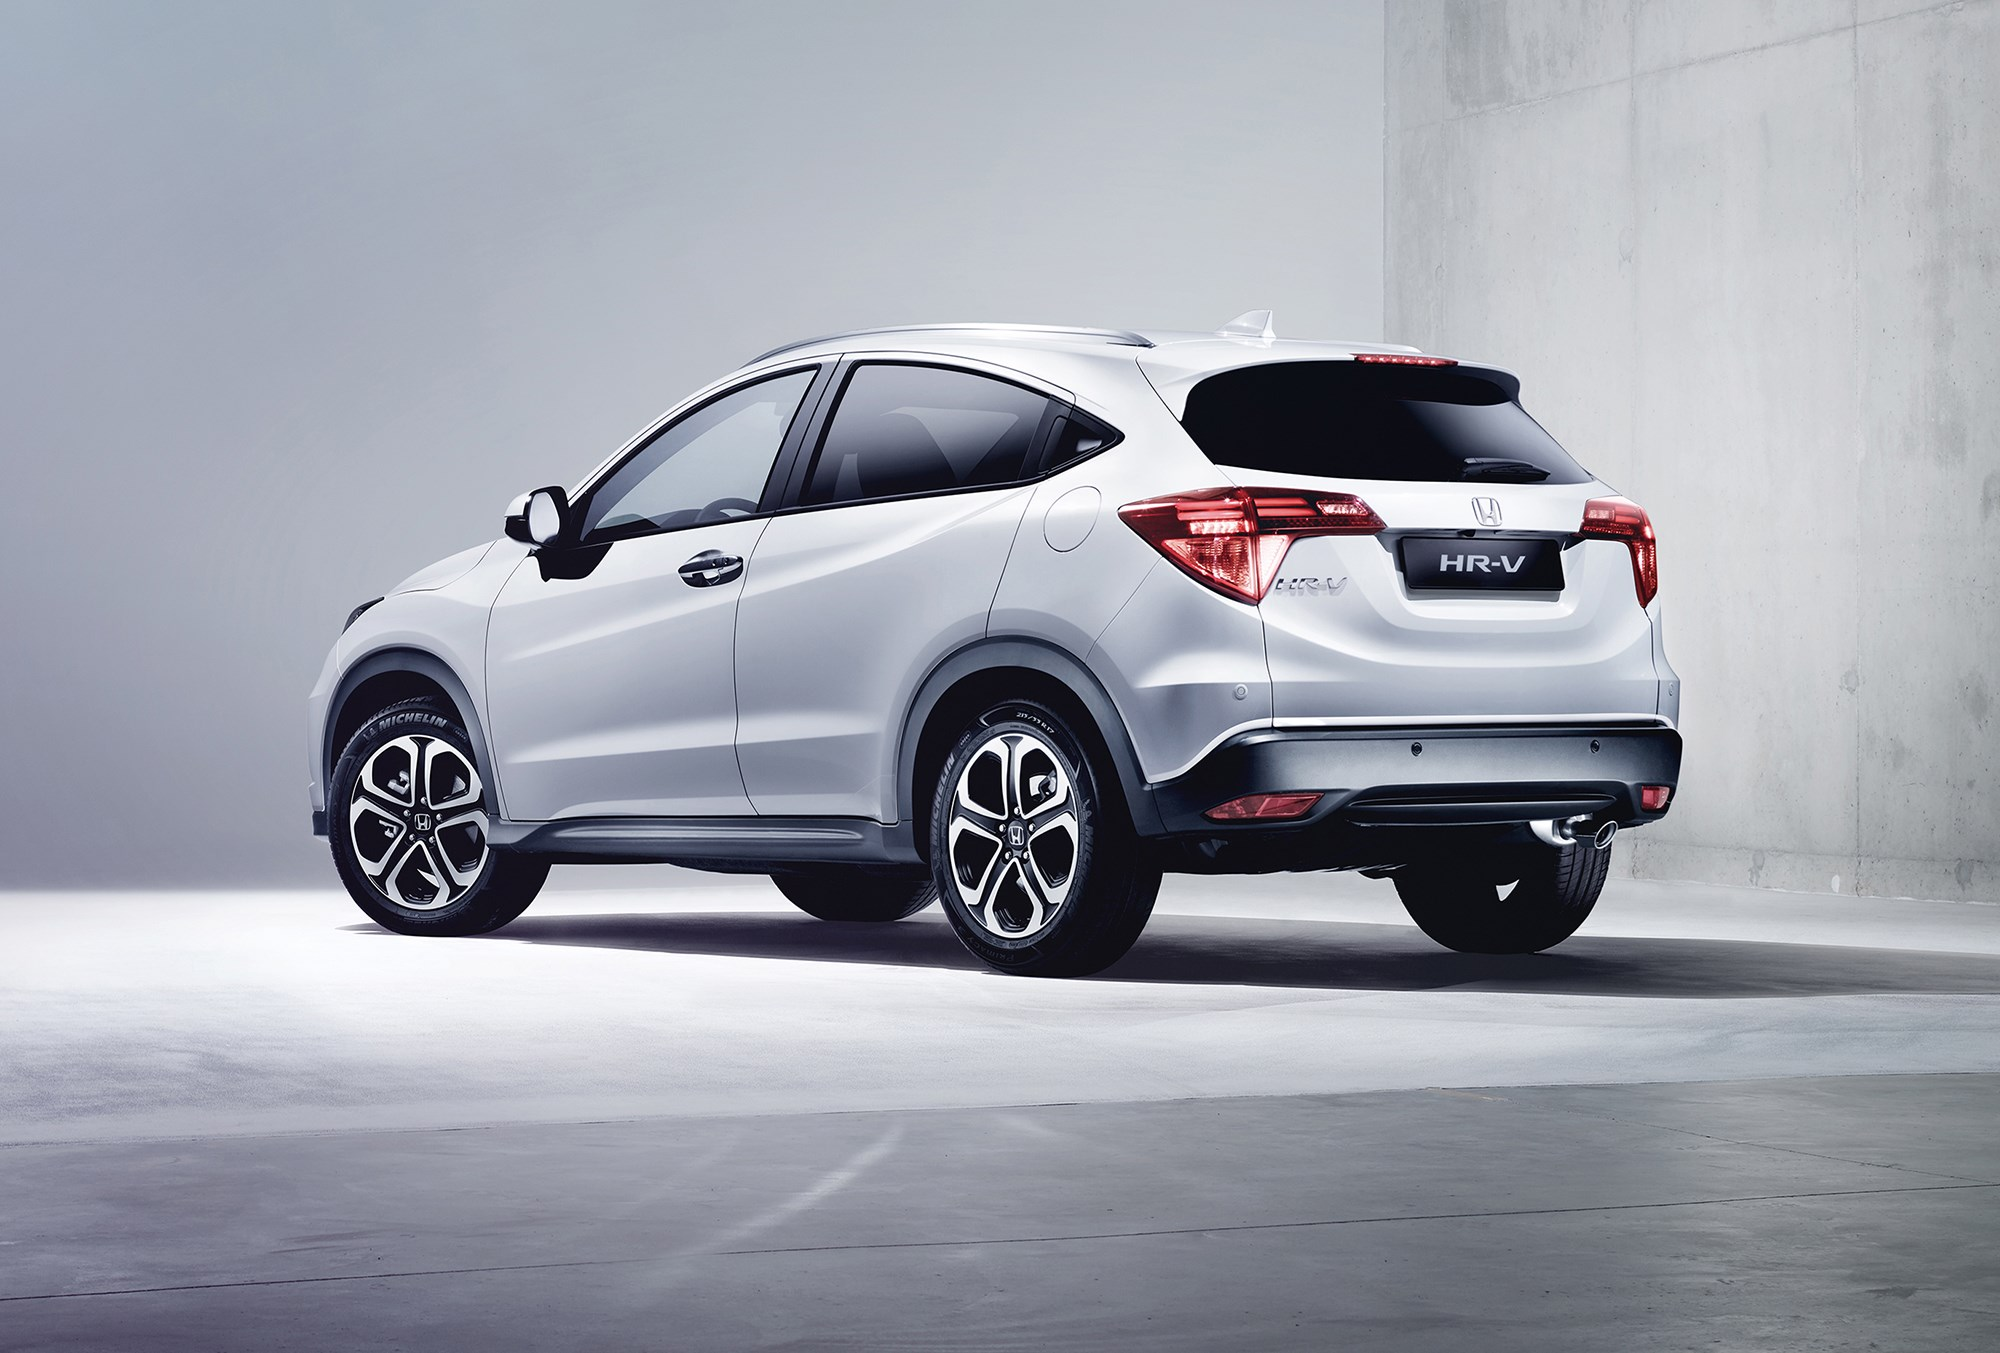 more info on honda hr v new honda hr v priced from £ 18k 118bhp 1 6 ...